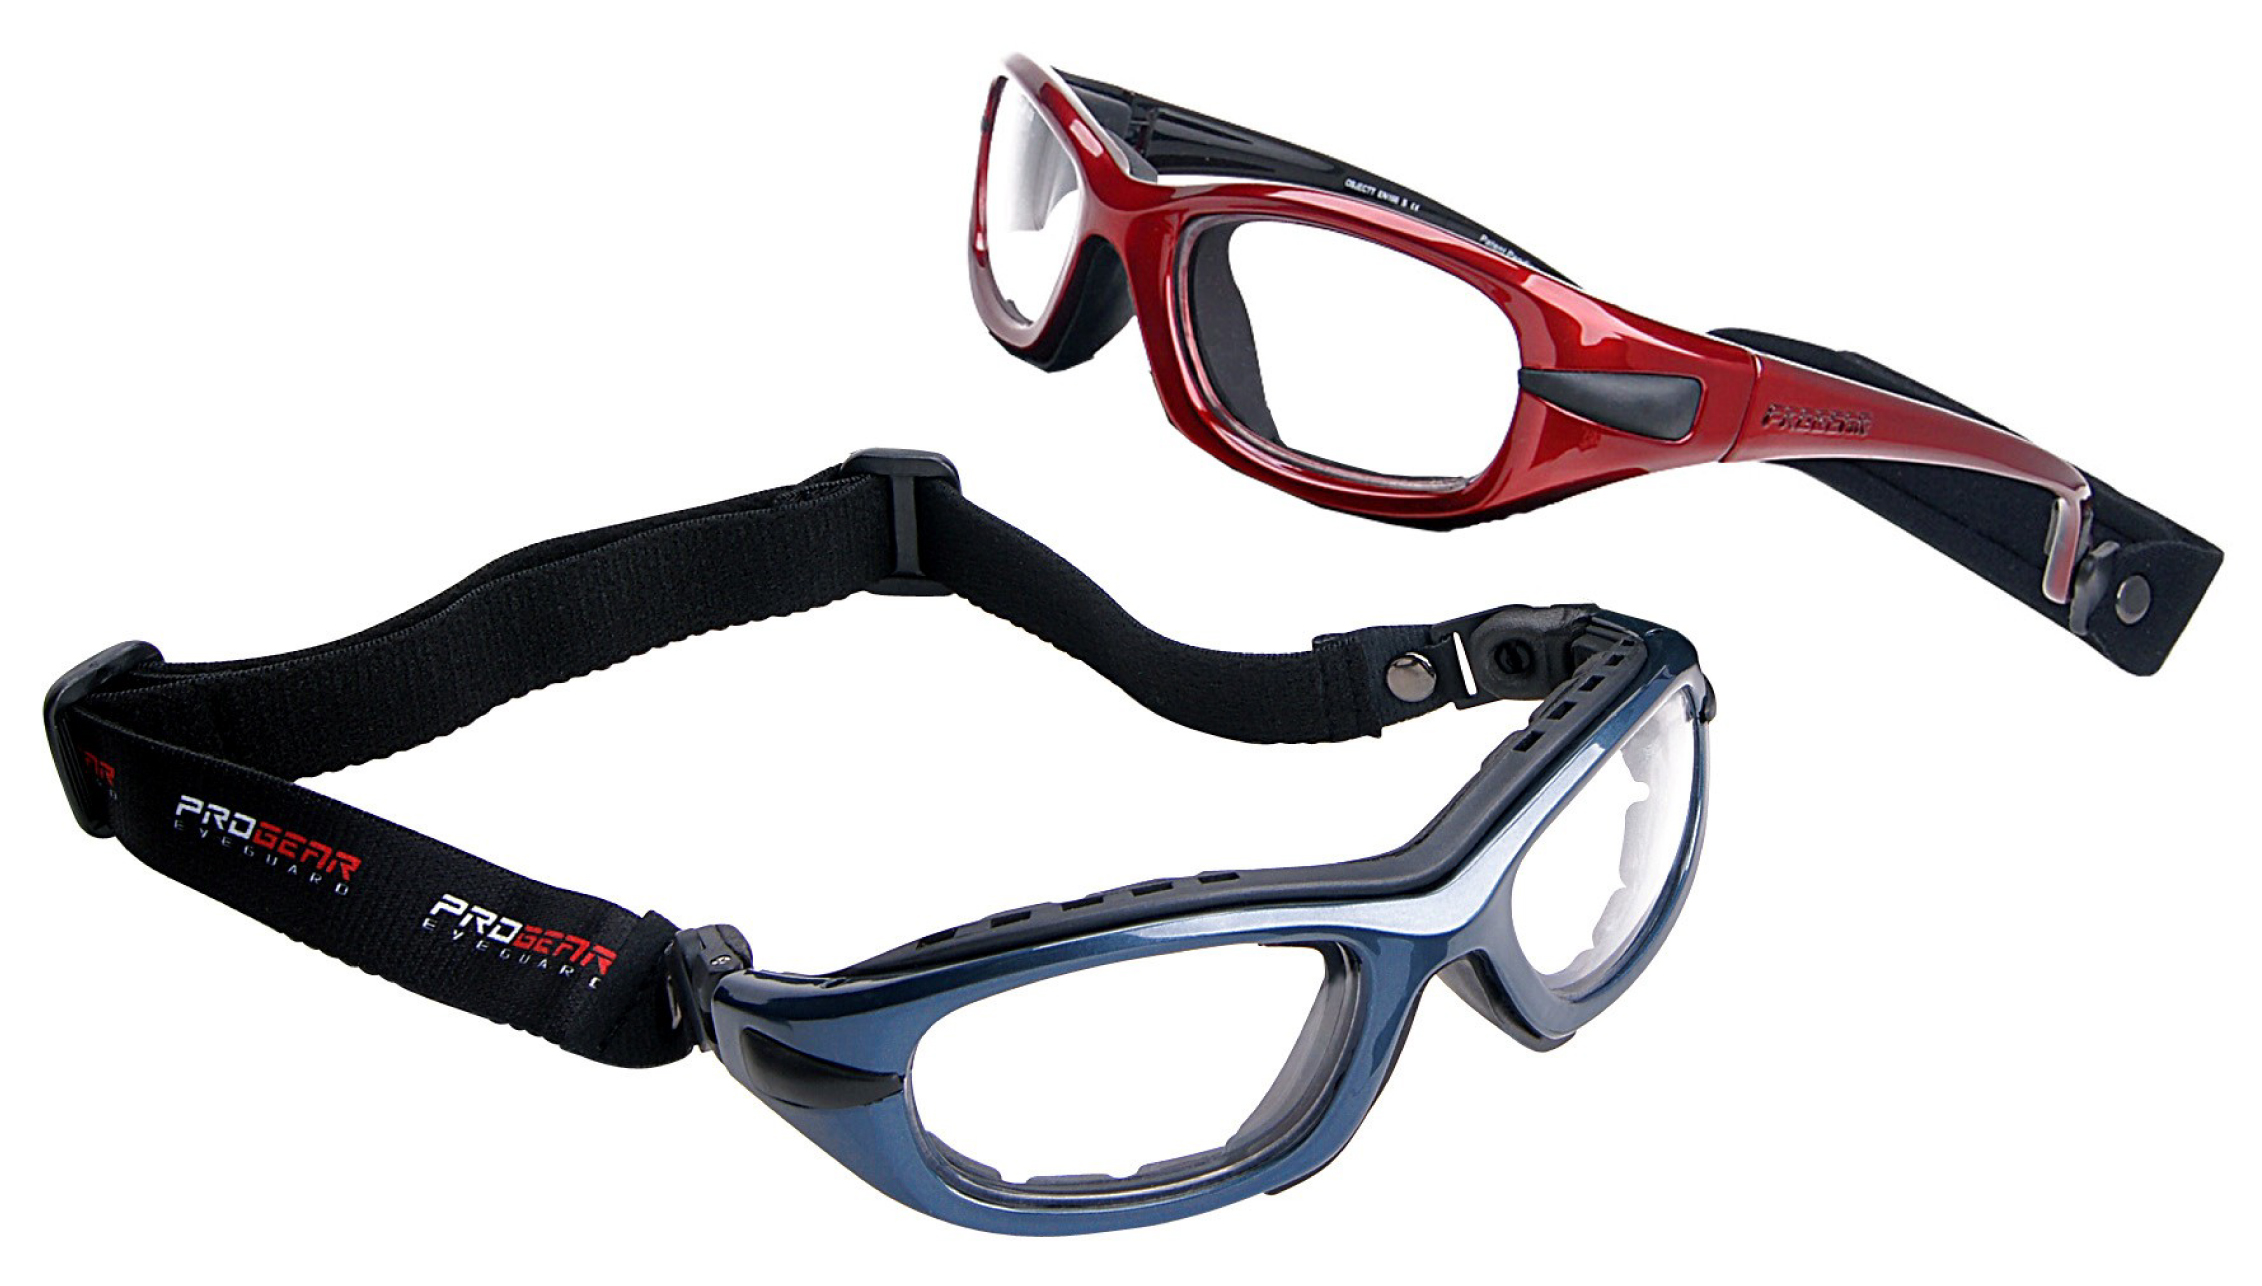 Protective Sports Glasses - Wearing protective eyewear is essential in certain sports. Wearing protective glasses can reduce risk of eye damage and the player's performance is enhanced by the ability to see better. Many sports clubs specify the need for protective eyewear, particularly for children.At Elliott Opticians, we offer a wide selection of protective sports glasses for both adults and children, which can be made to EU safety standards.   Call in store to view our full range, with brand like Bollé and Progear, there's loads to choose from.